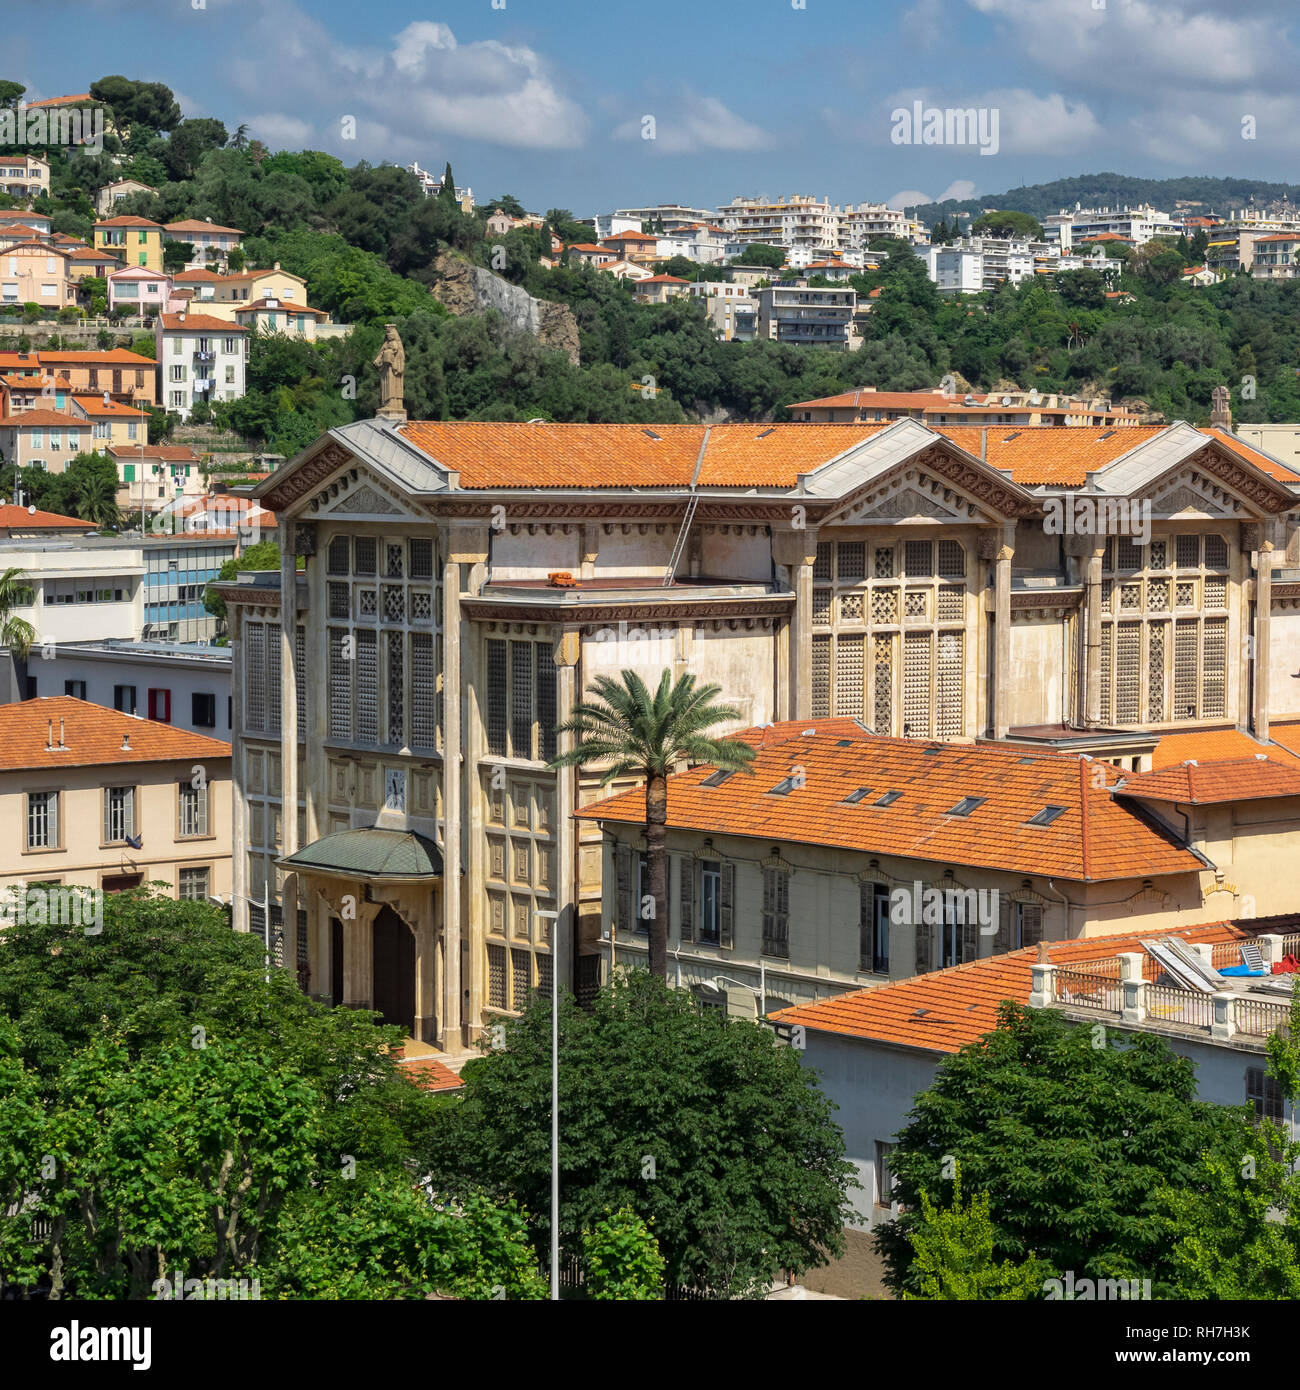 NICE, FRANCE:  Skyline view over the City with its tiled roofs - Stock Image